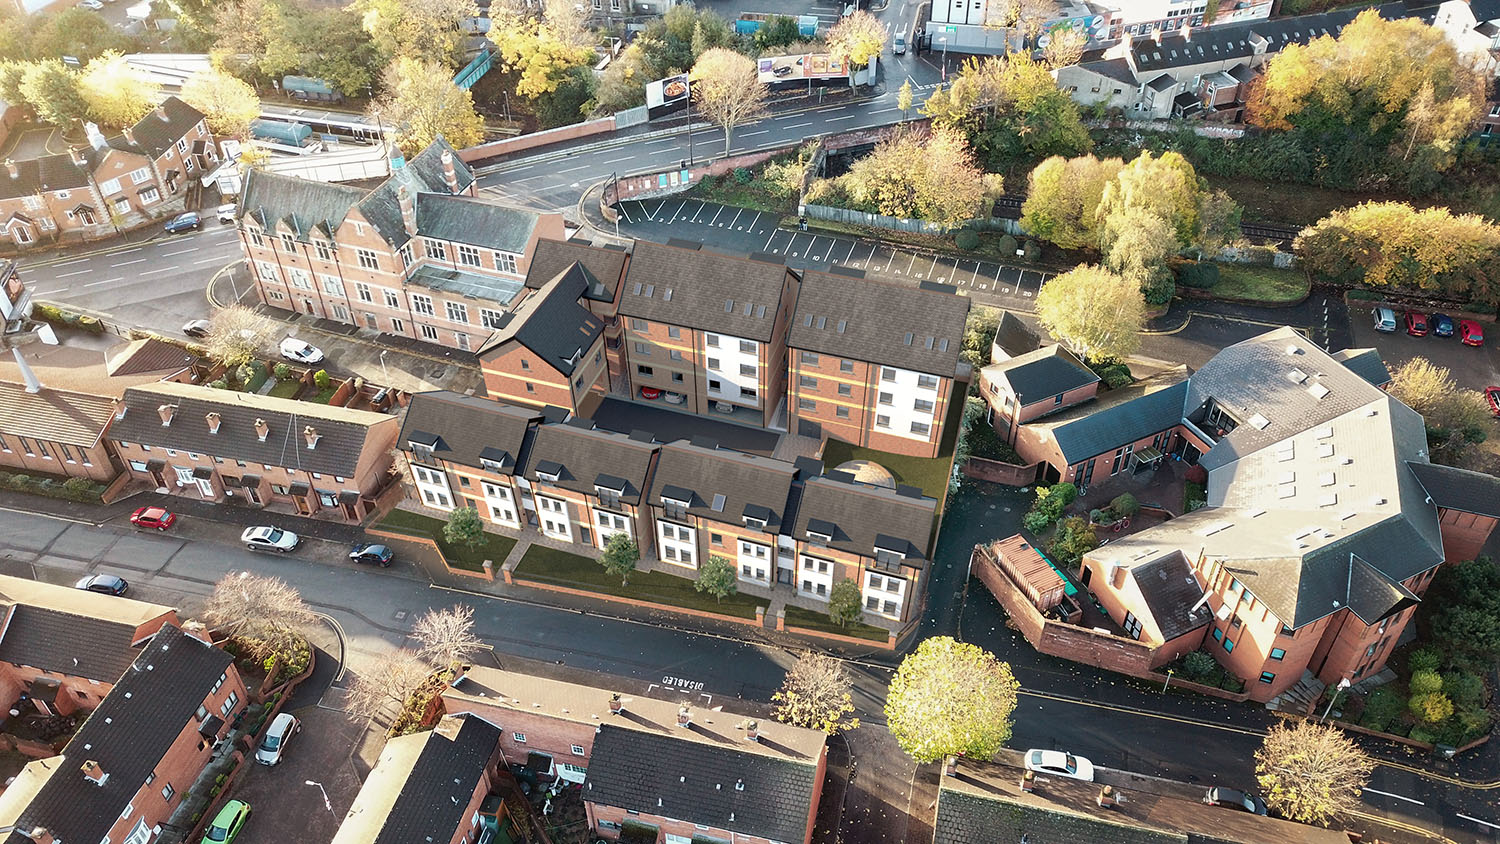 thirty-three-south-belfast-apartments-dron-cgi-francos-and-costa-architectural-visualisation-agency